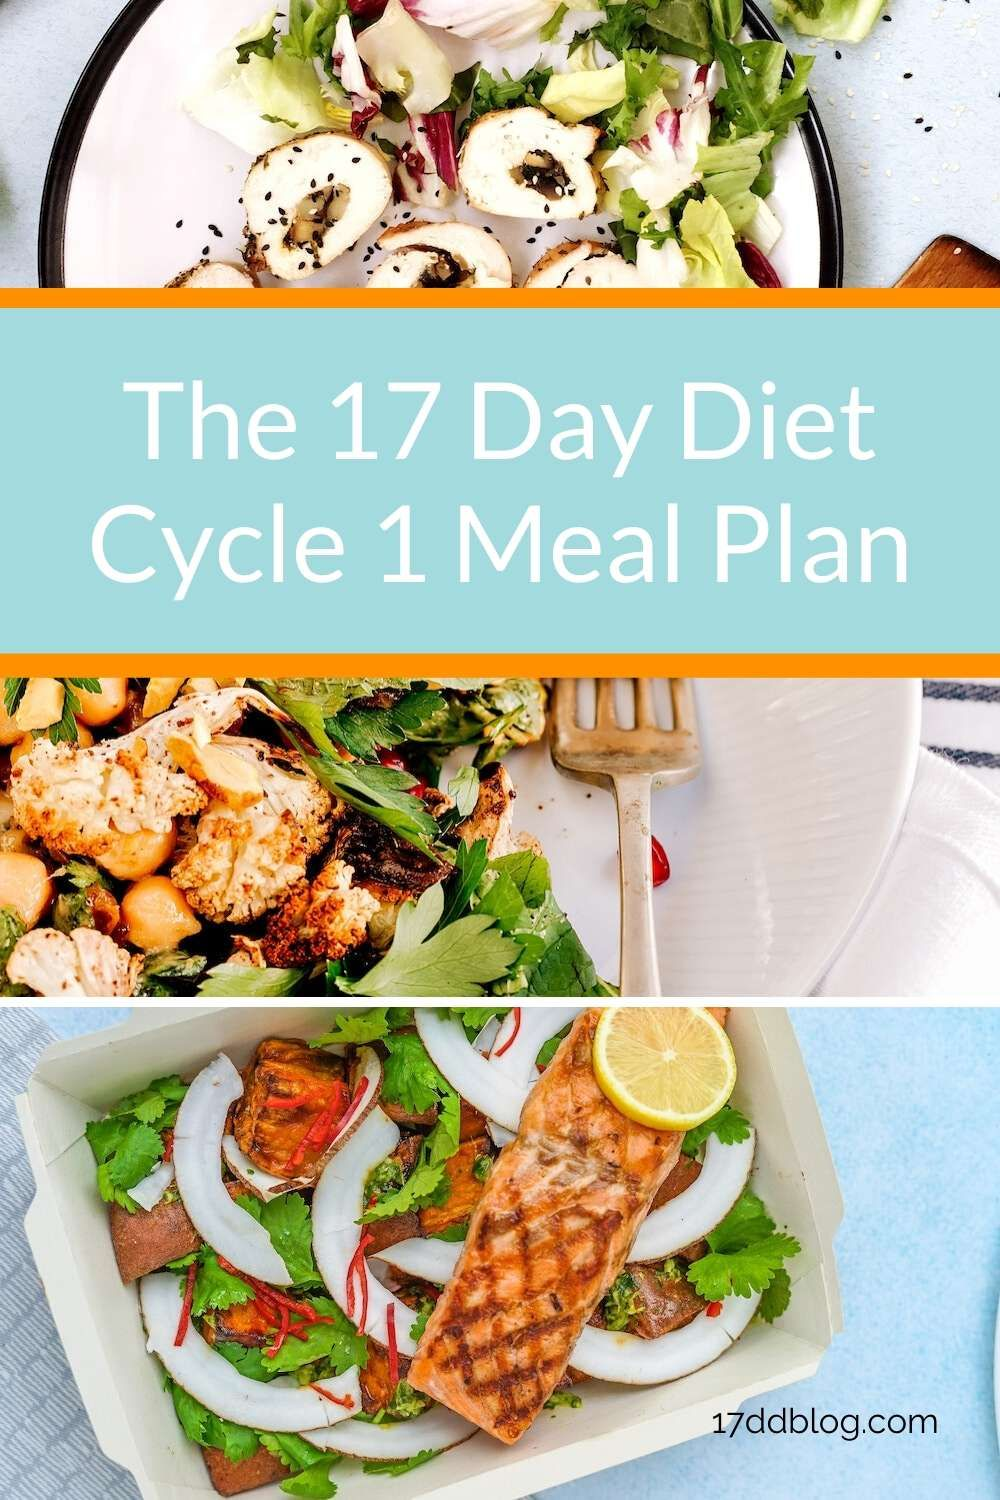 Cycle 1 meal plan for the 17 day diet you cant go wrong